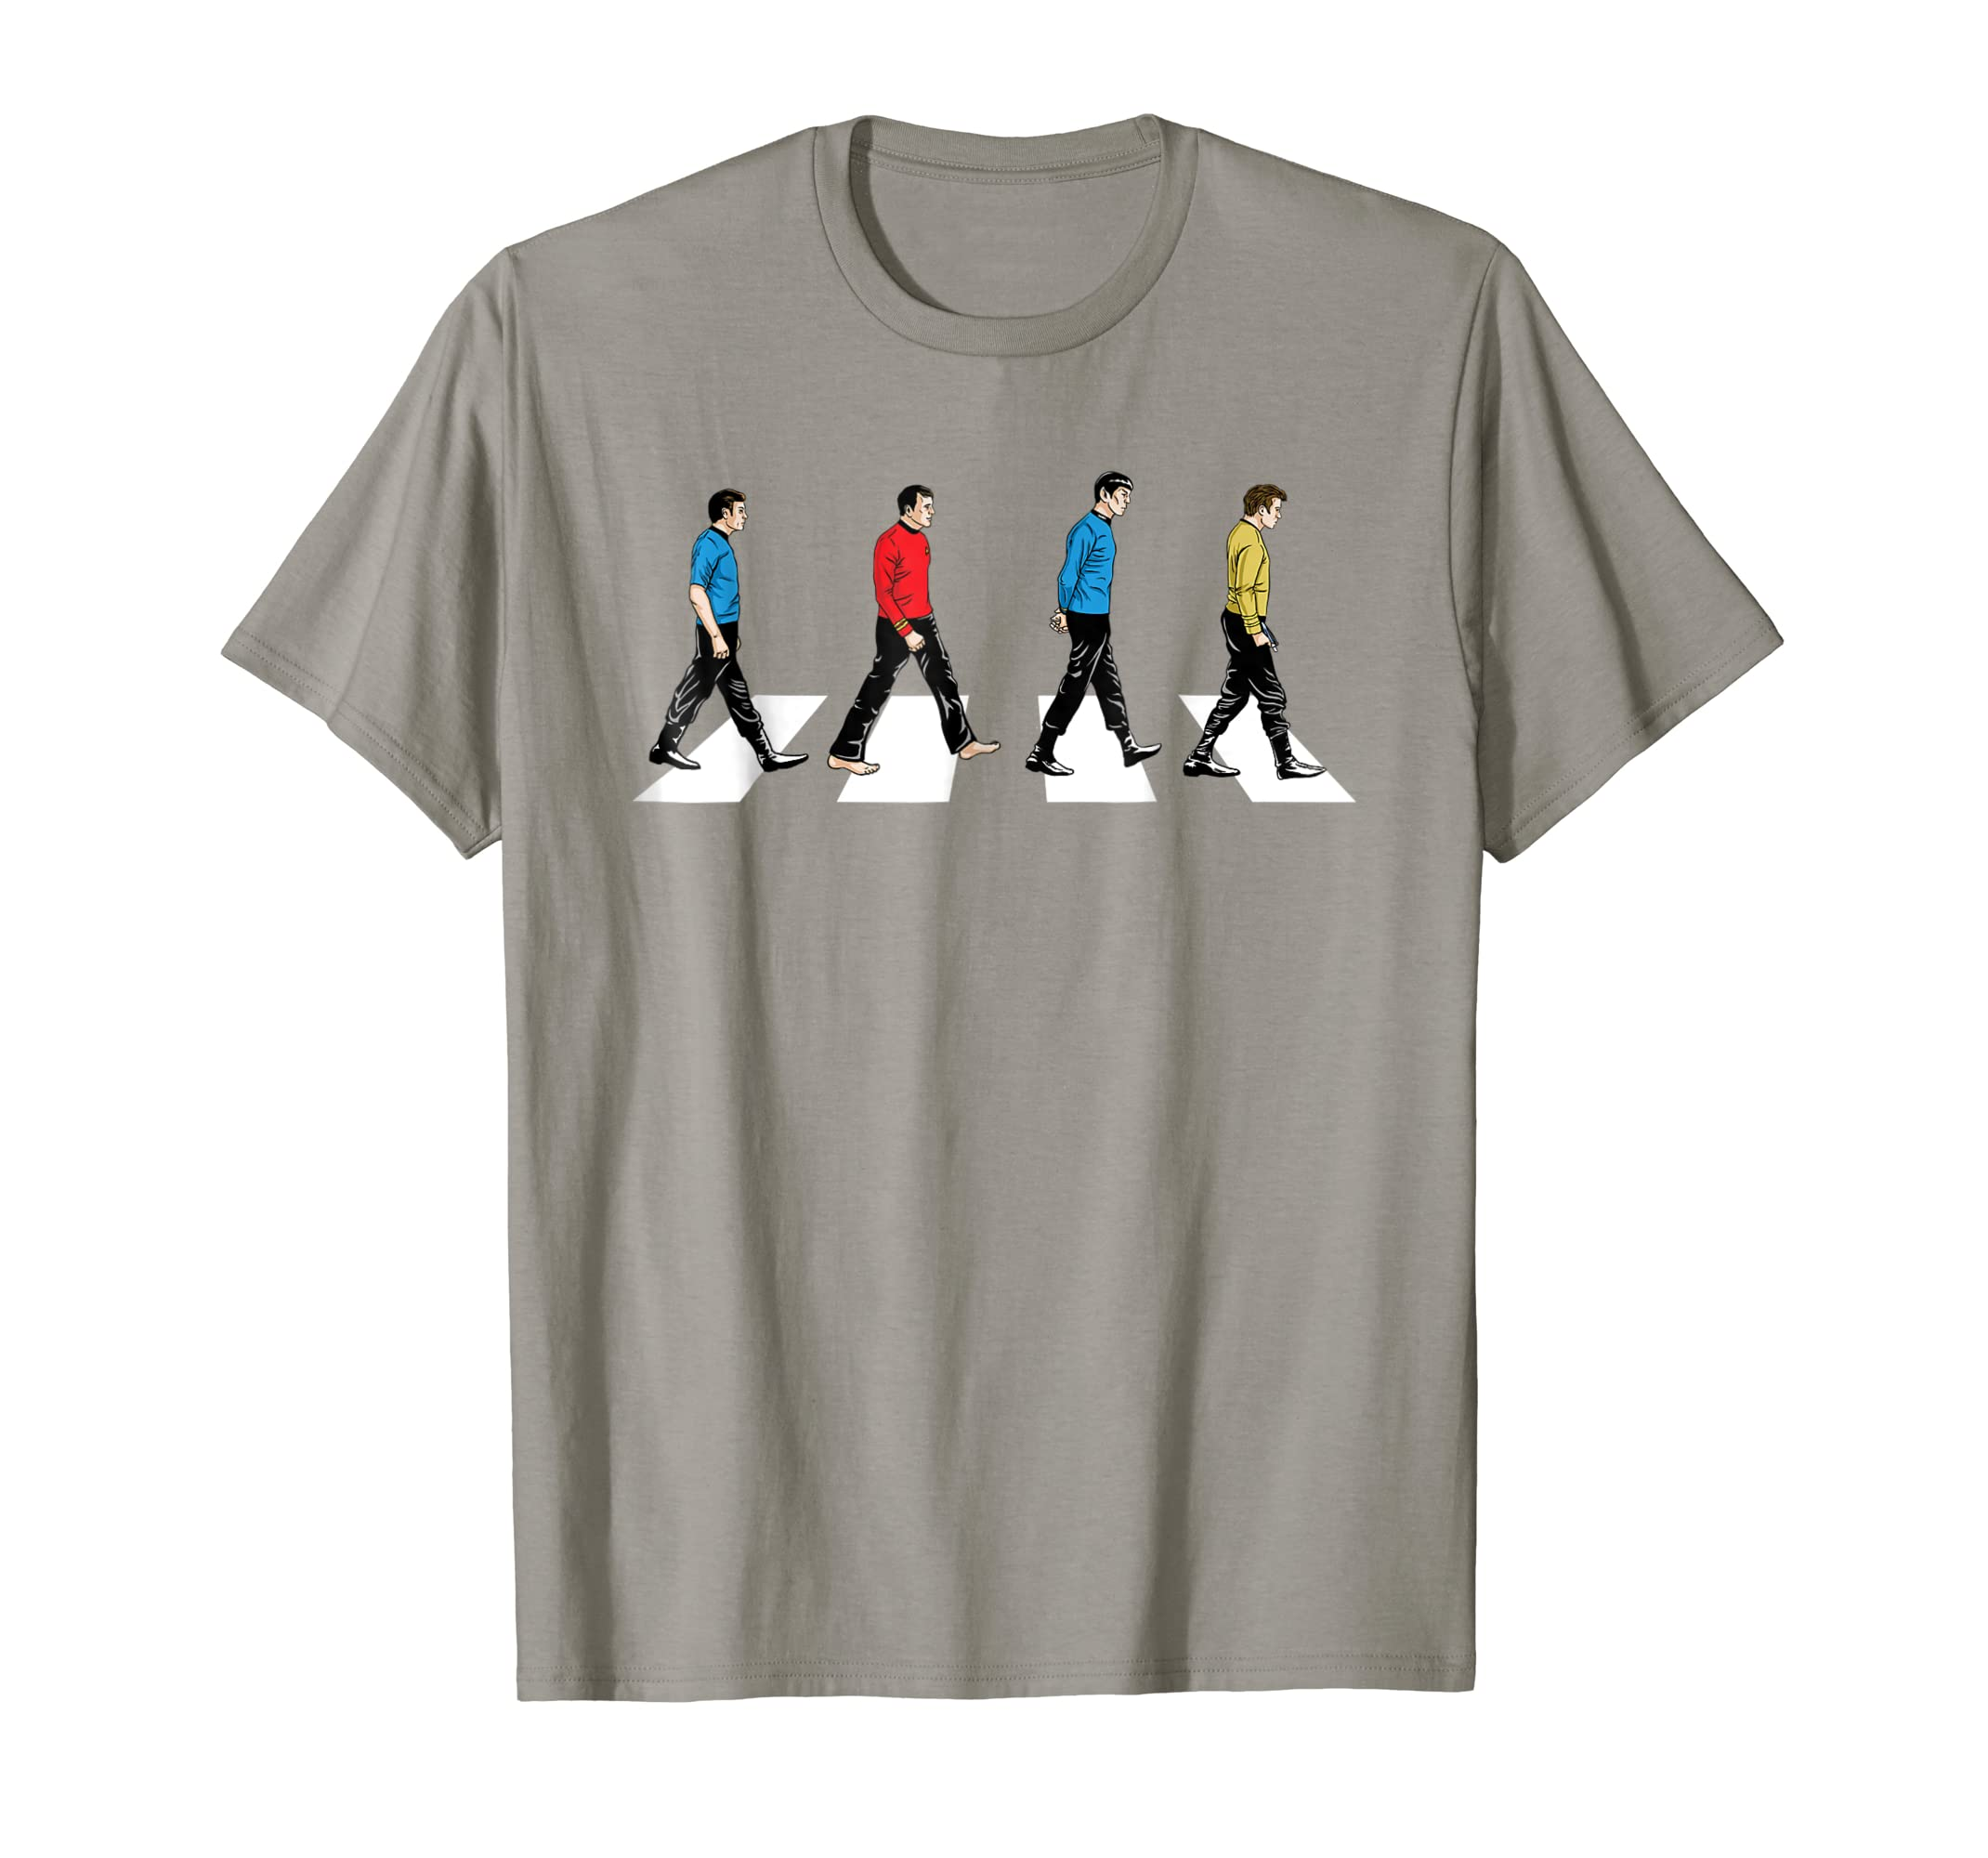 d74bf263f Amazon.com: Star Trek Tribute To The Beatles Abbey Road T-Shirt: Clothing